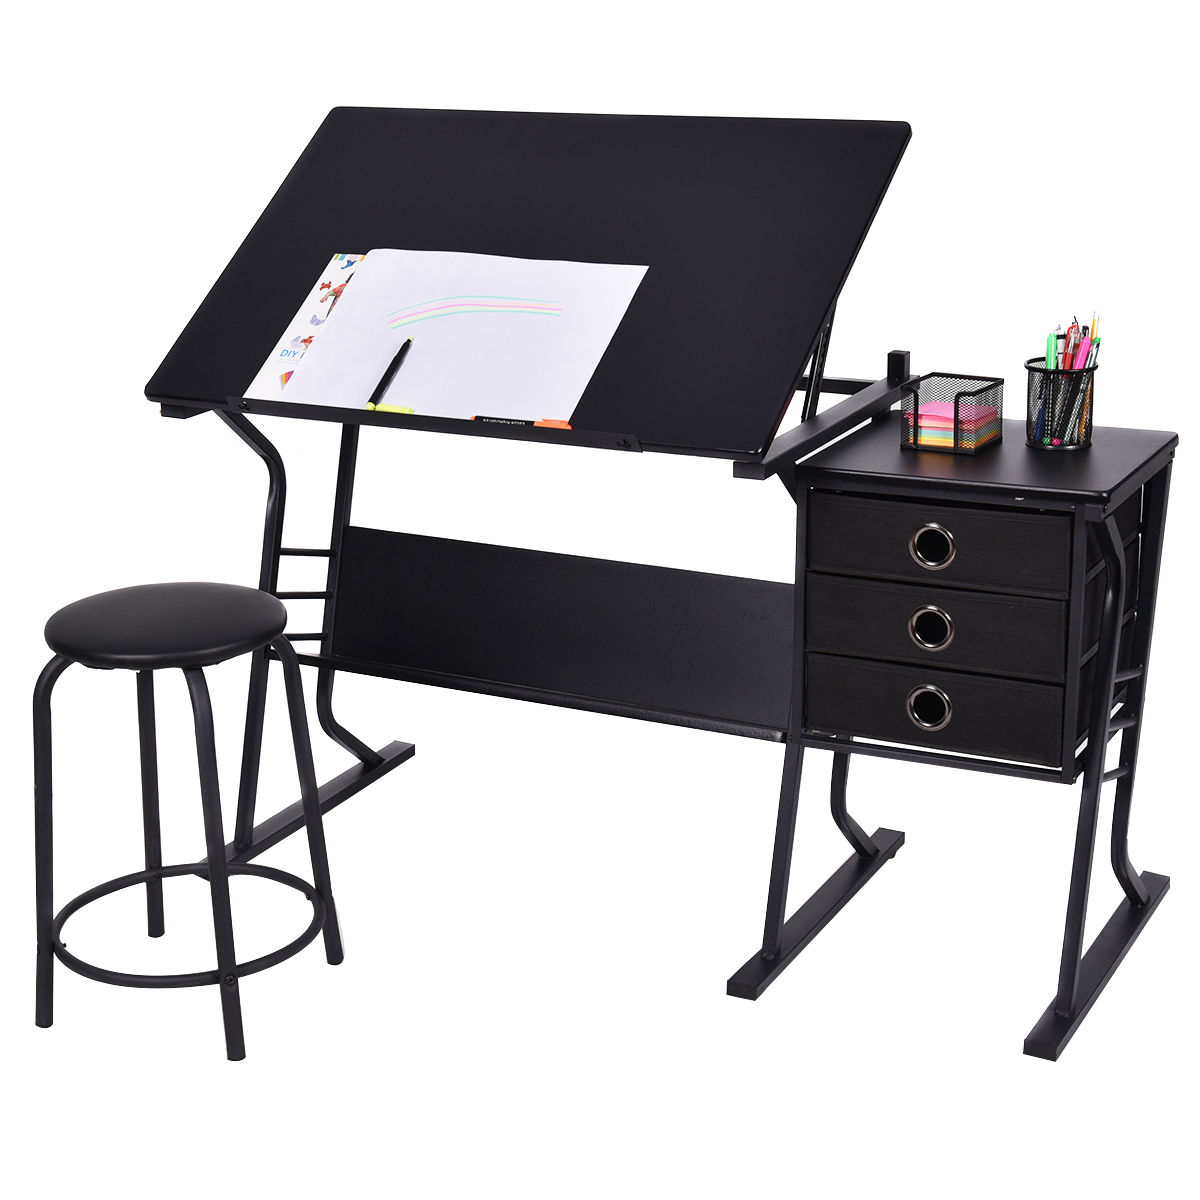 Costway Drafting Table Adjustable Drawing Desk Art Craft Hobby w/ Stool & Drawers Black